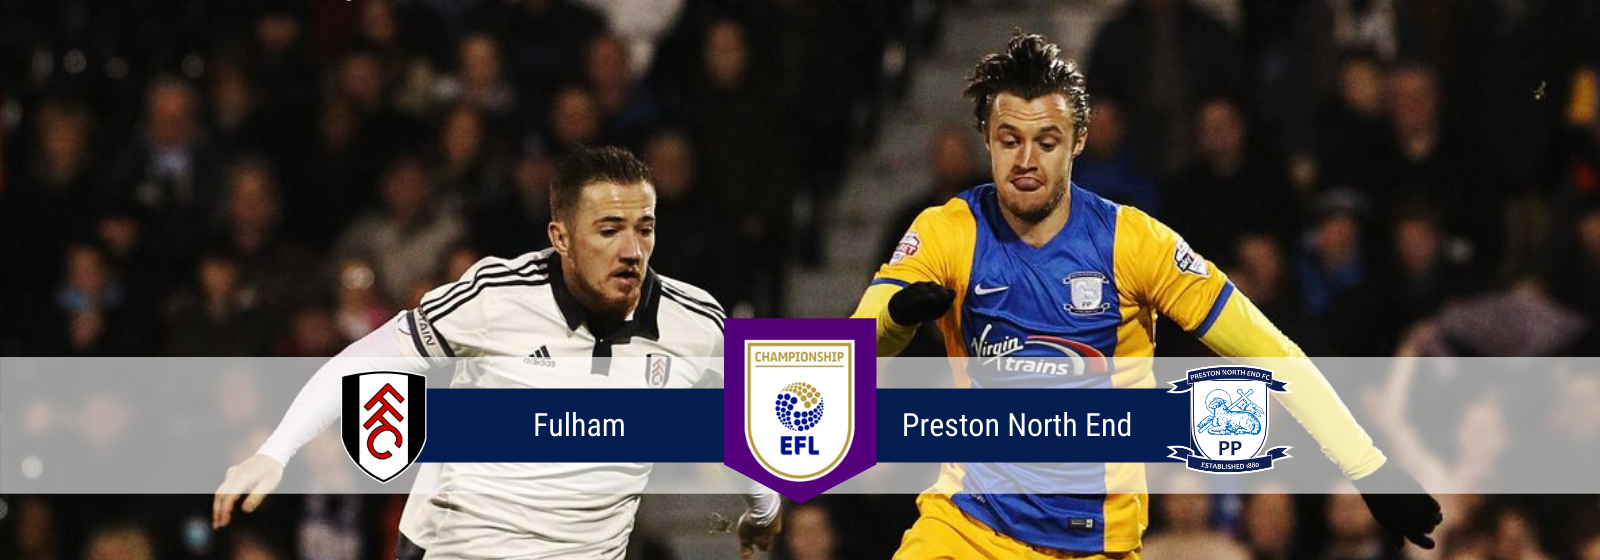 Asianconnect: Fulham vs Preston North End Odds for February 29, 2020